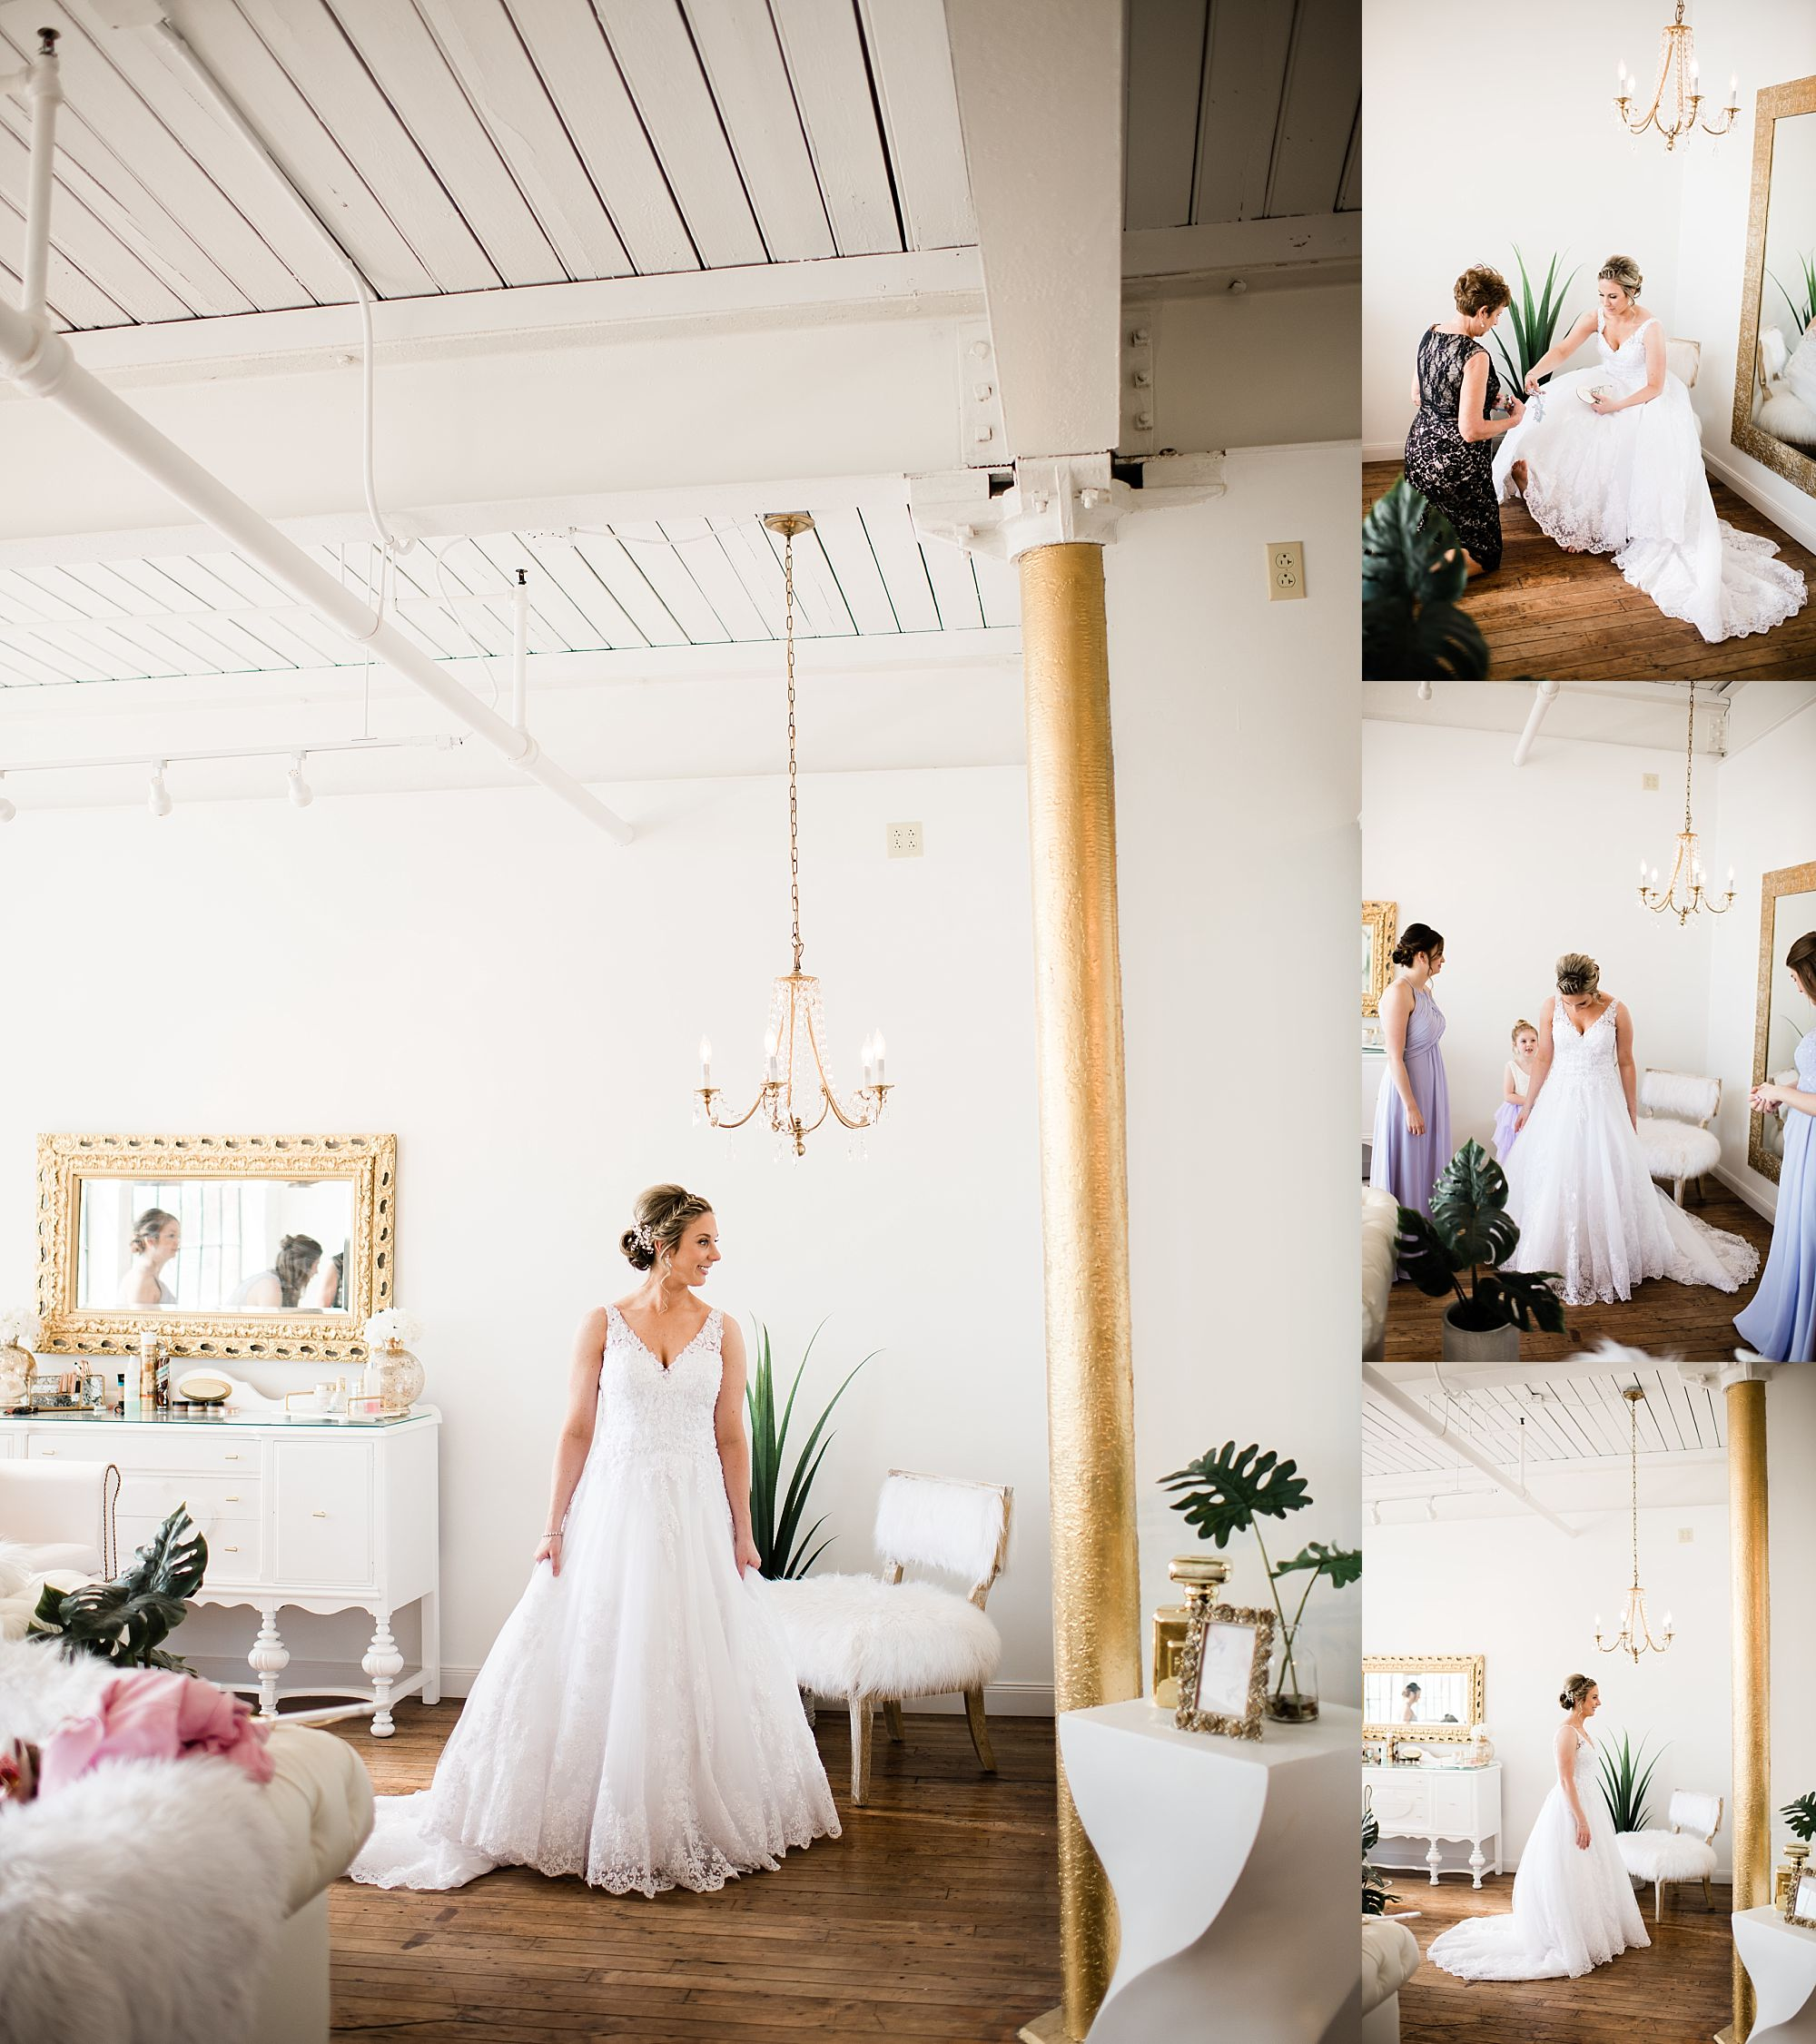 Williamsport PA Wedding bridal party studio space final touches